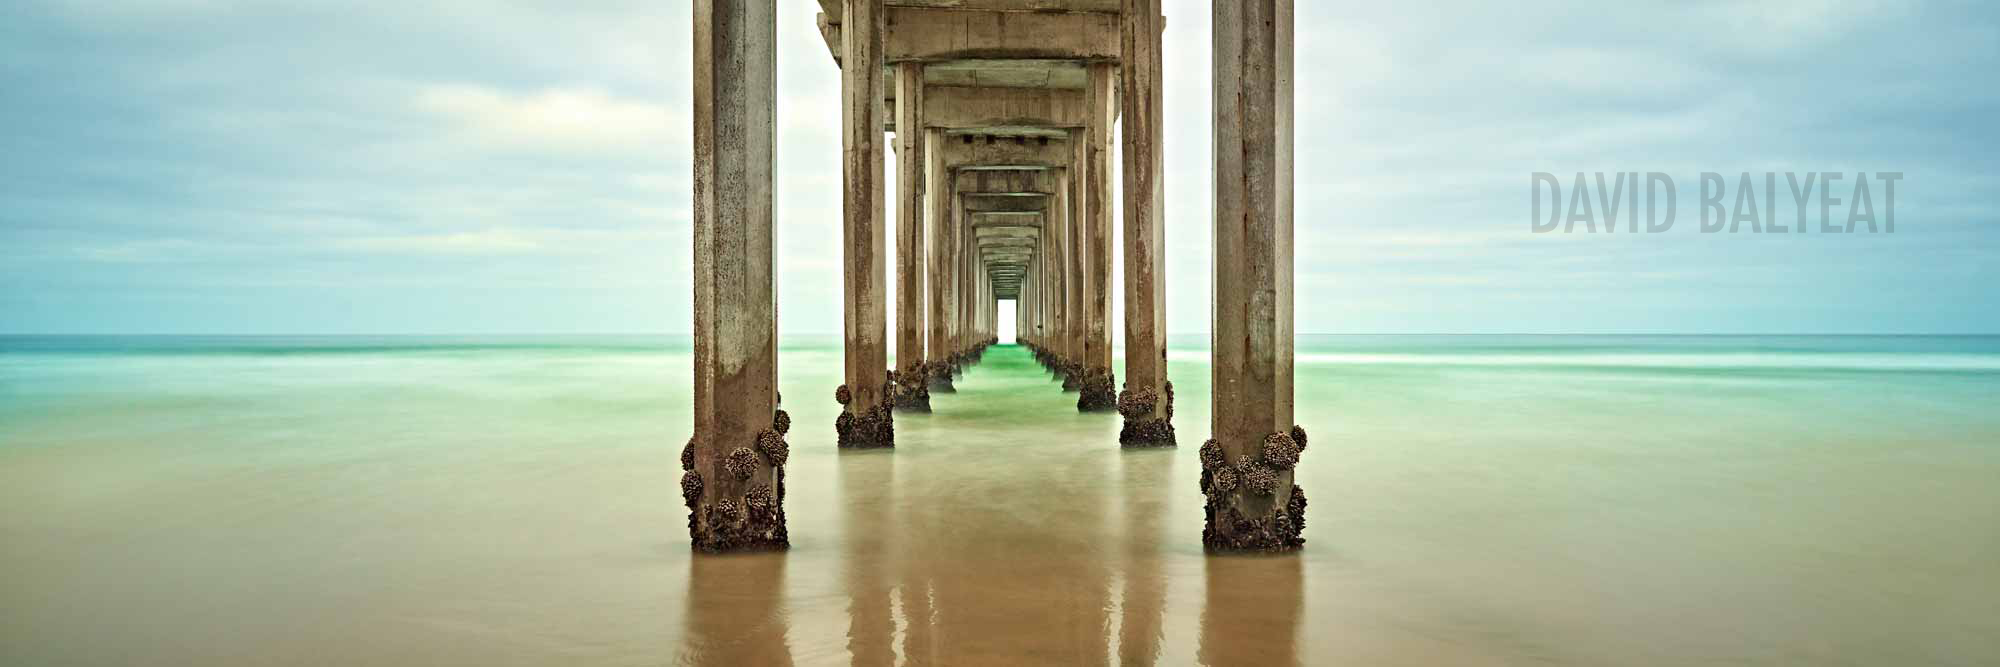 Scripps Pier La Jolla California panoramic high-definition HD professional landscape photography